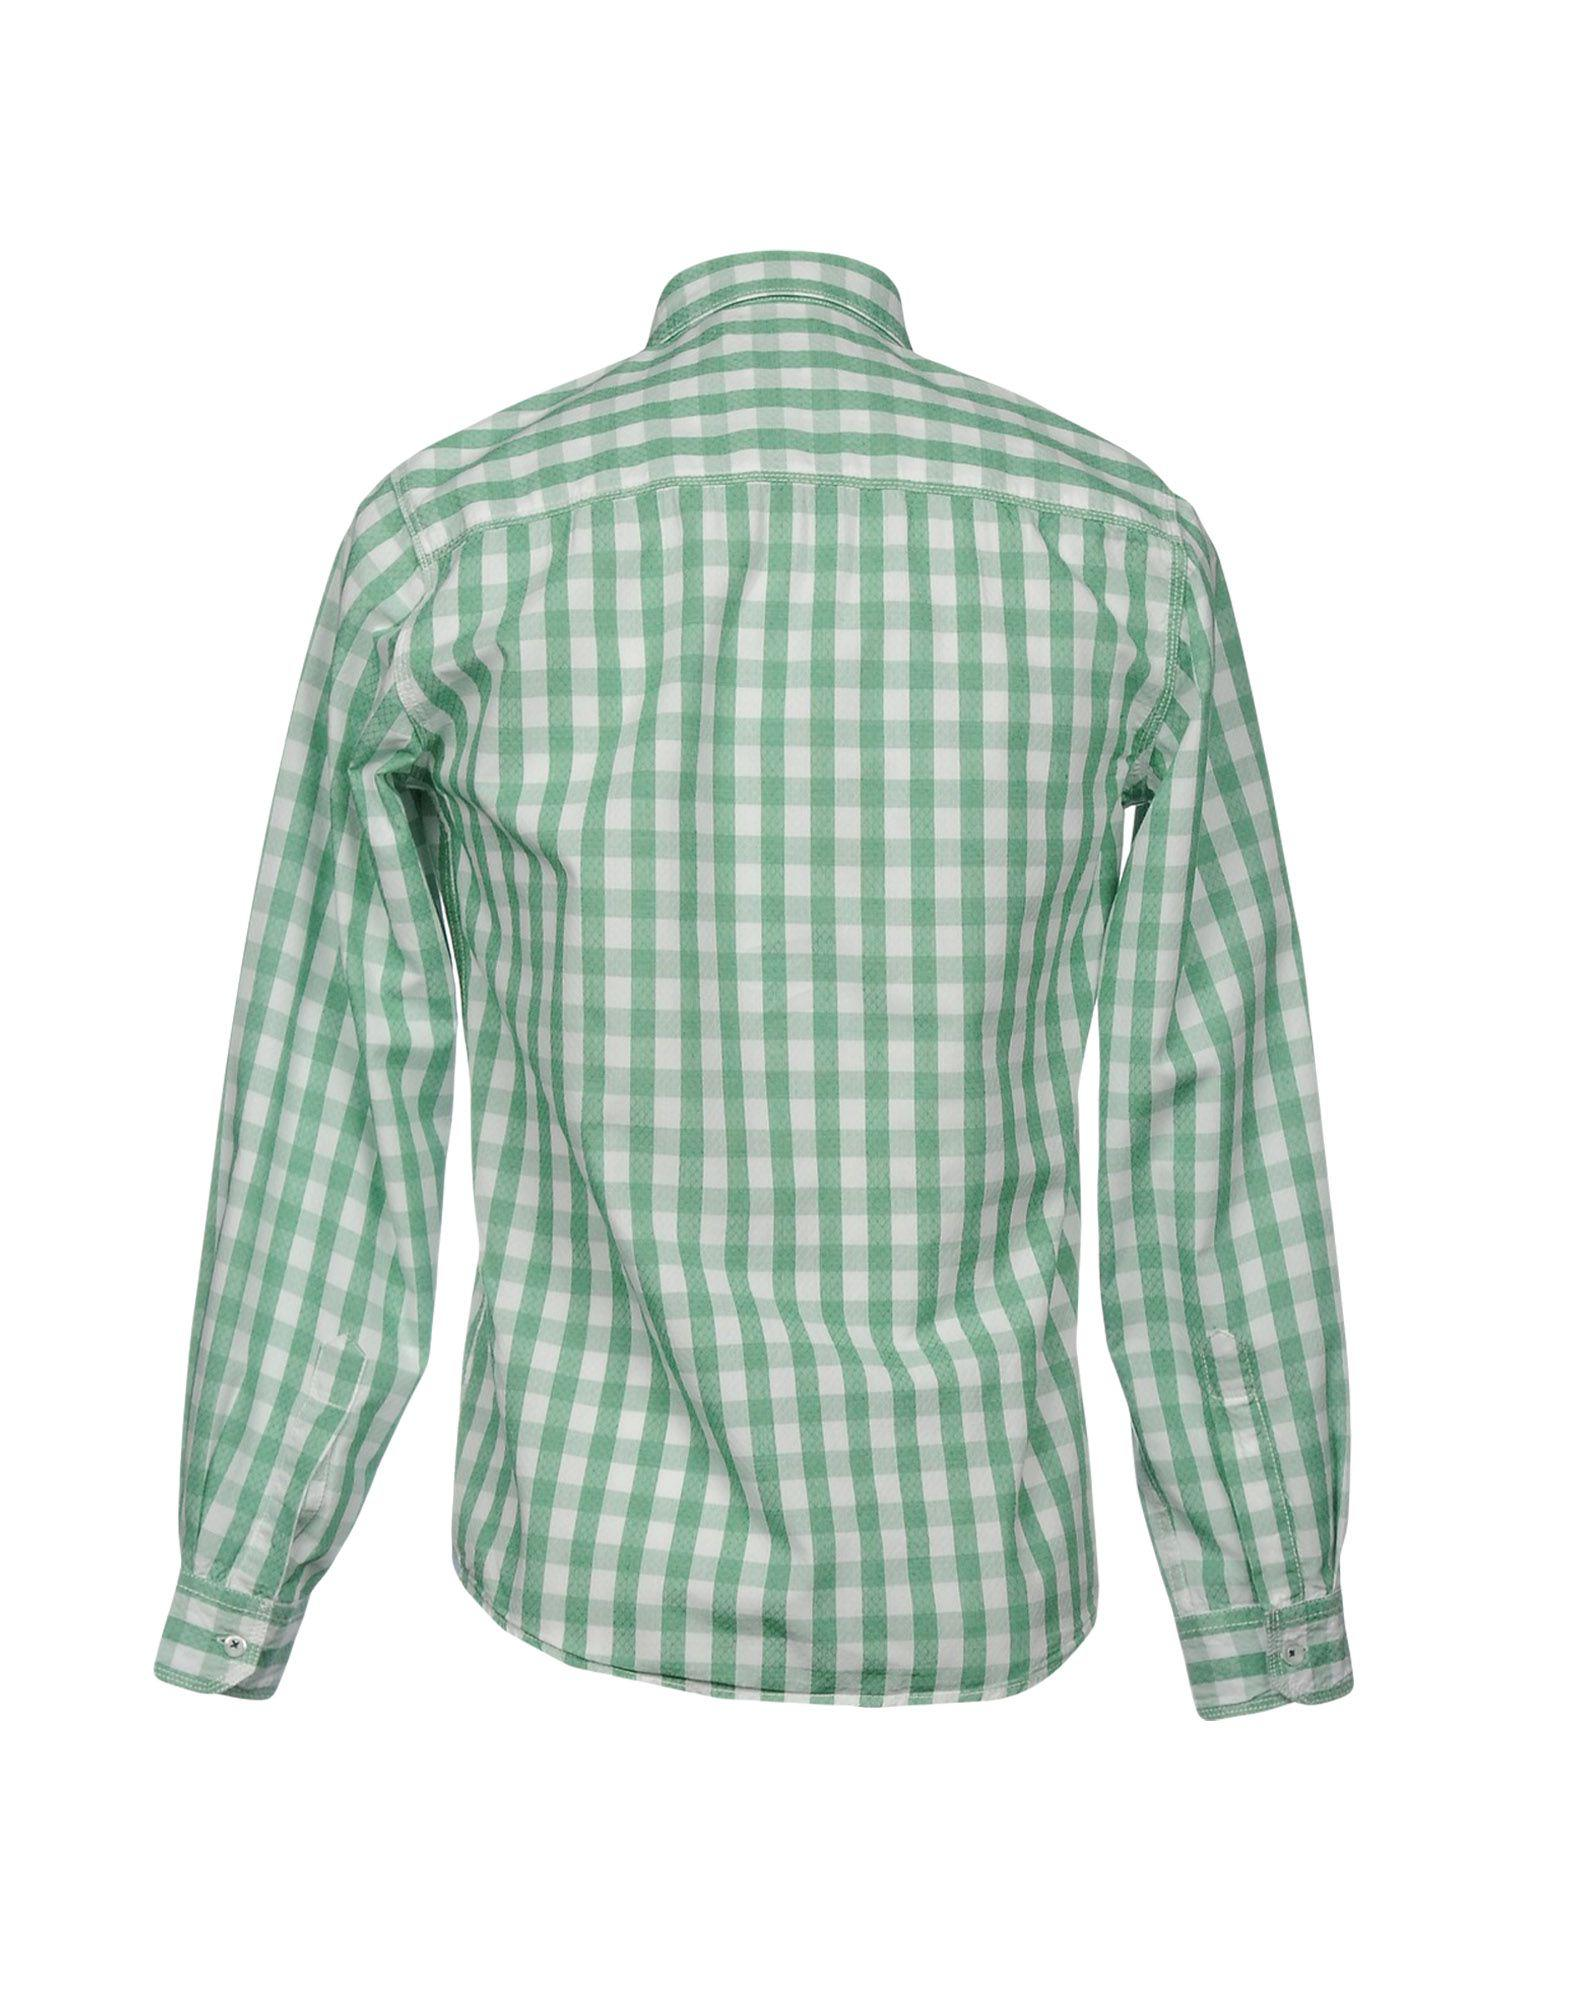 Pepe Jeans Cotton Shirt in Green for Men